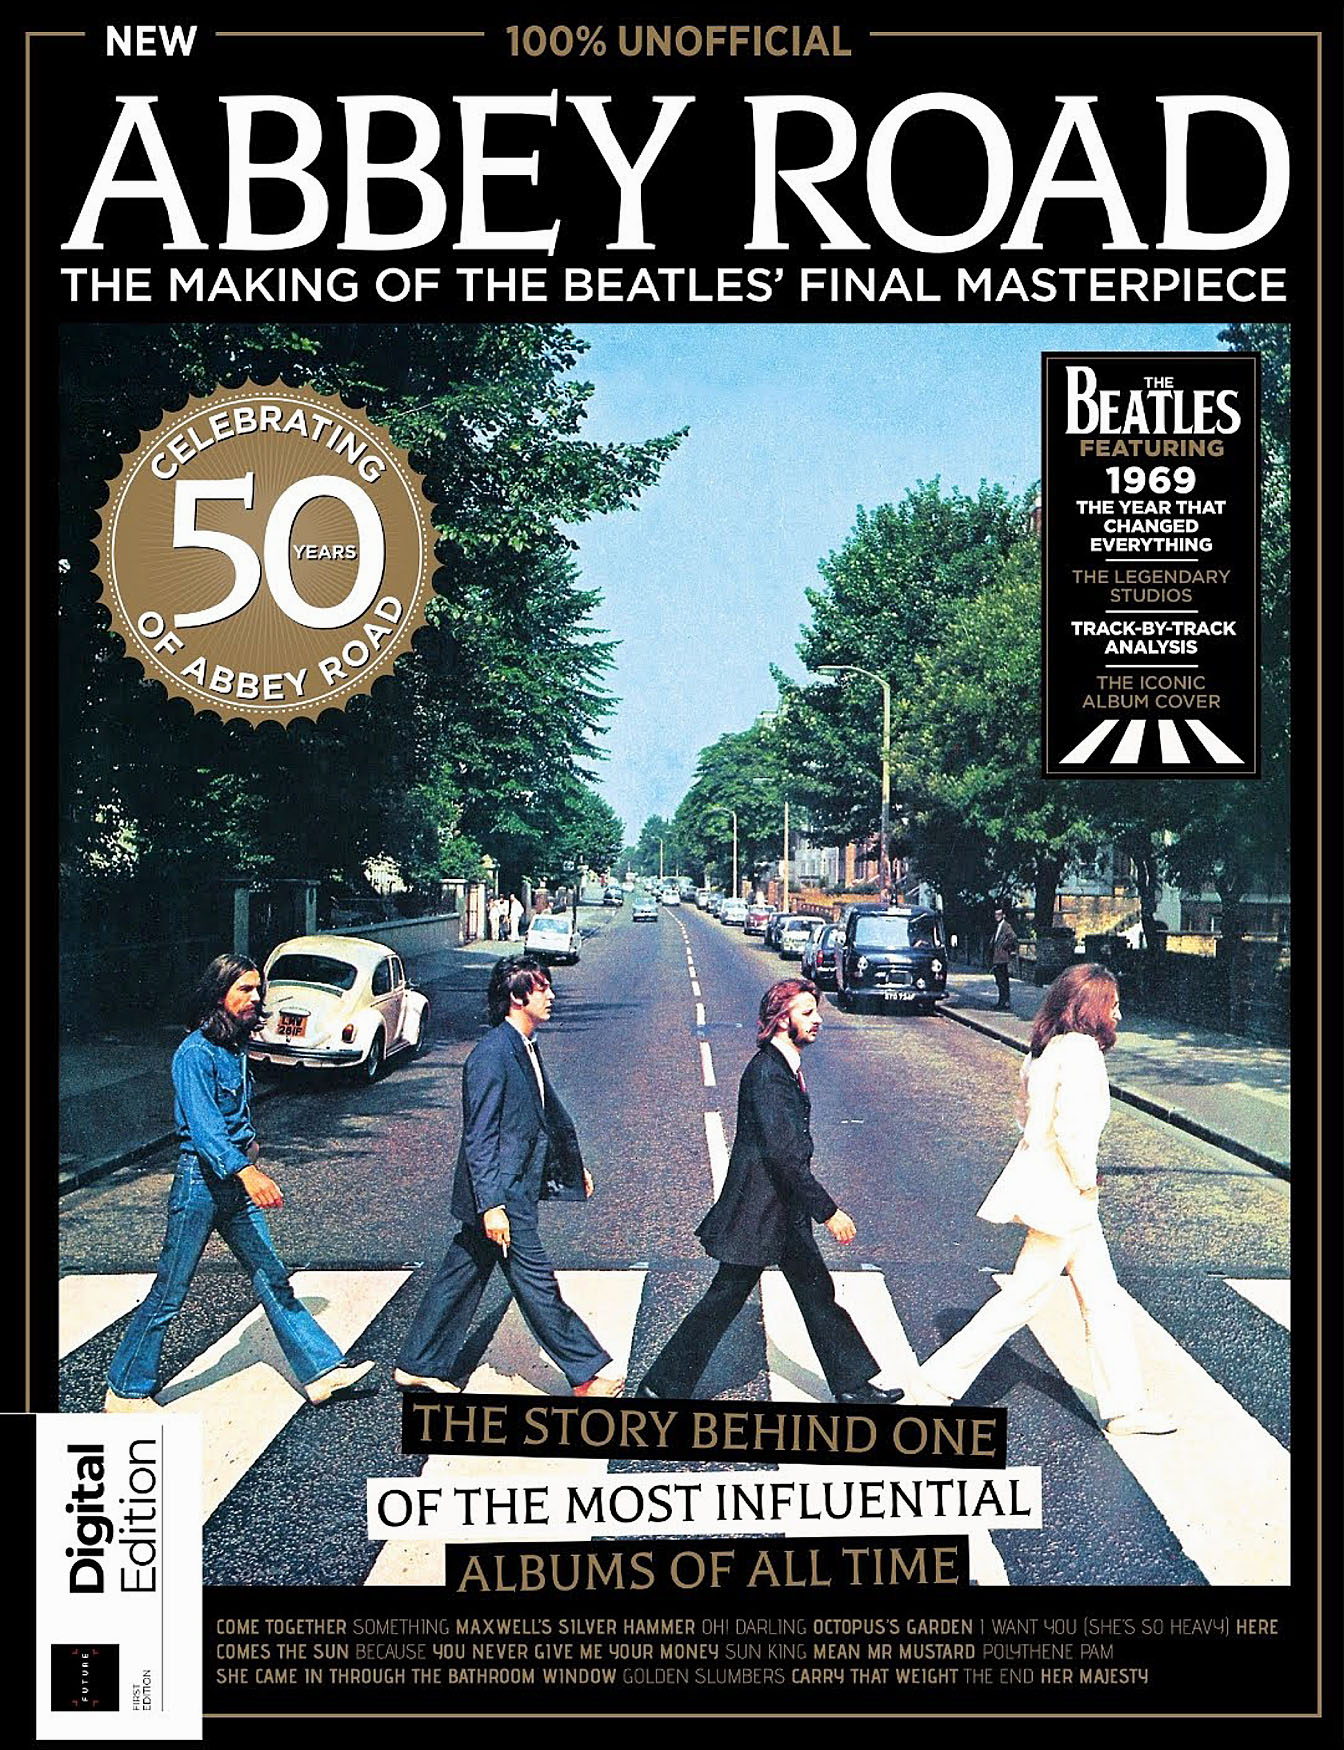 Abbey Road The Beatles 1st Ed 2019.jpg